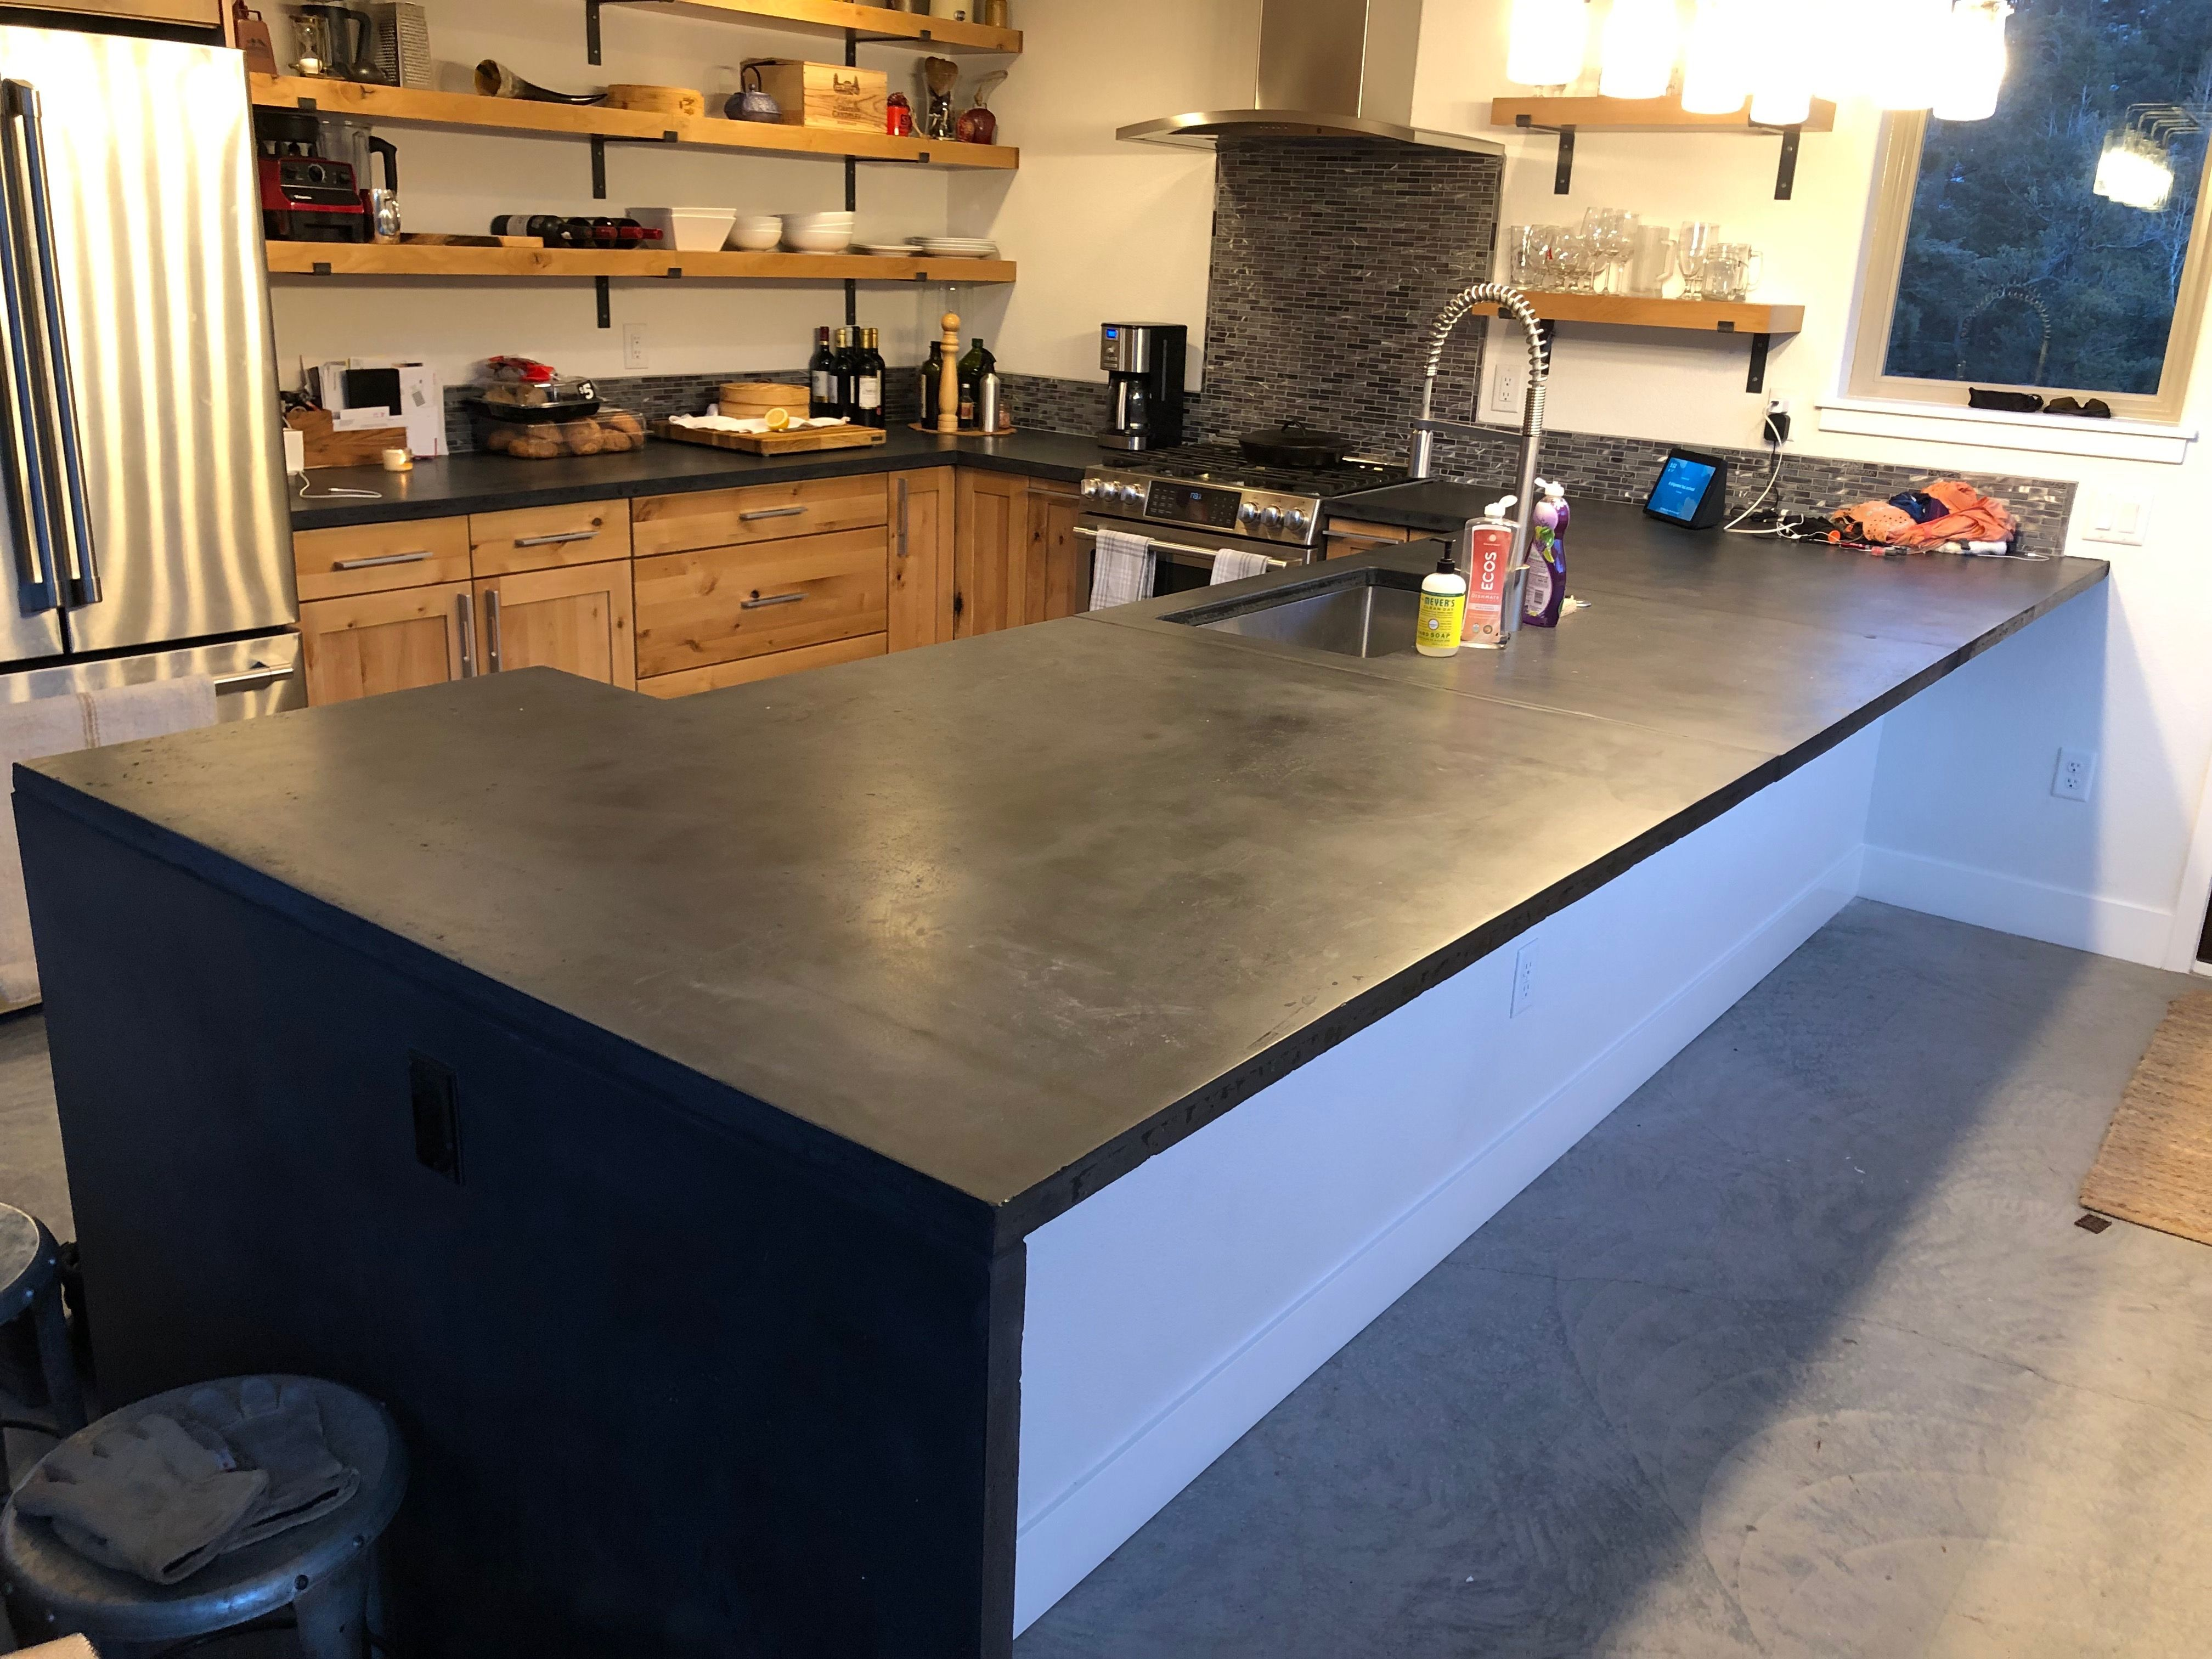 Custom Black Concrete Kitchen Countertop With Waterfall Edge Created By Dudley Design Llc